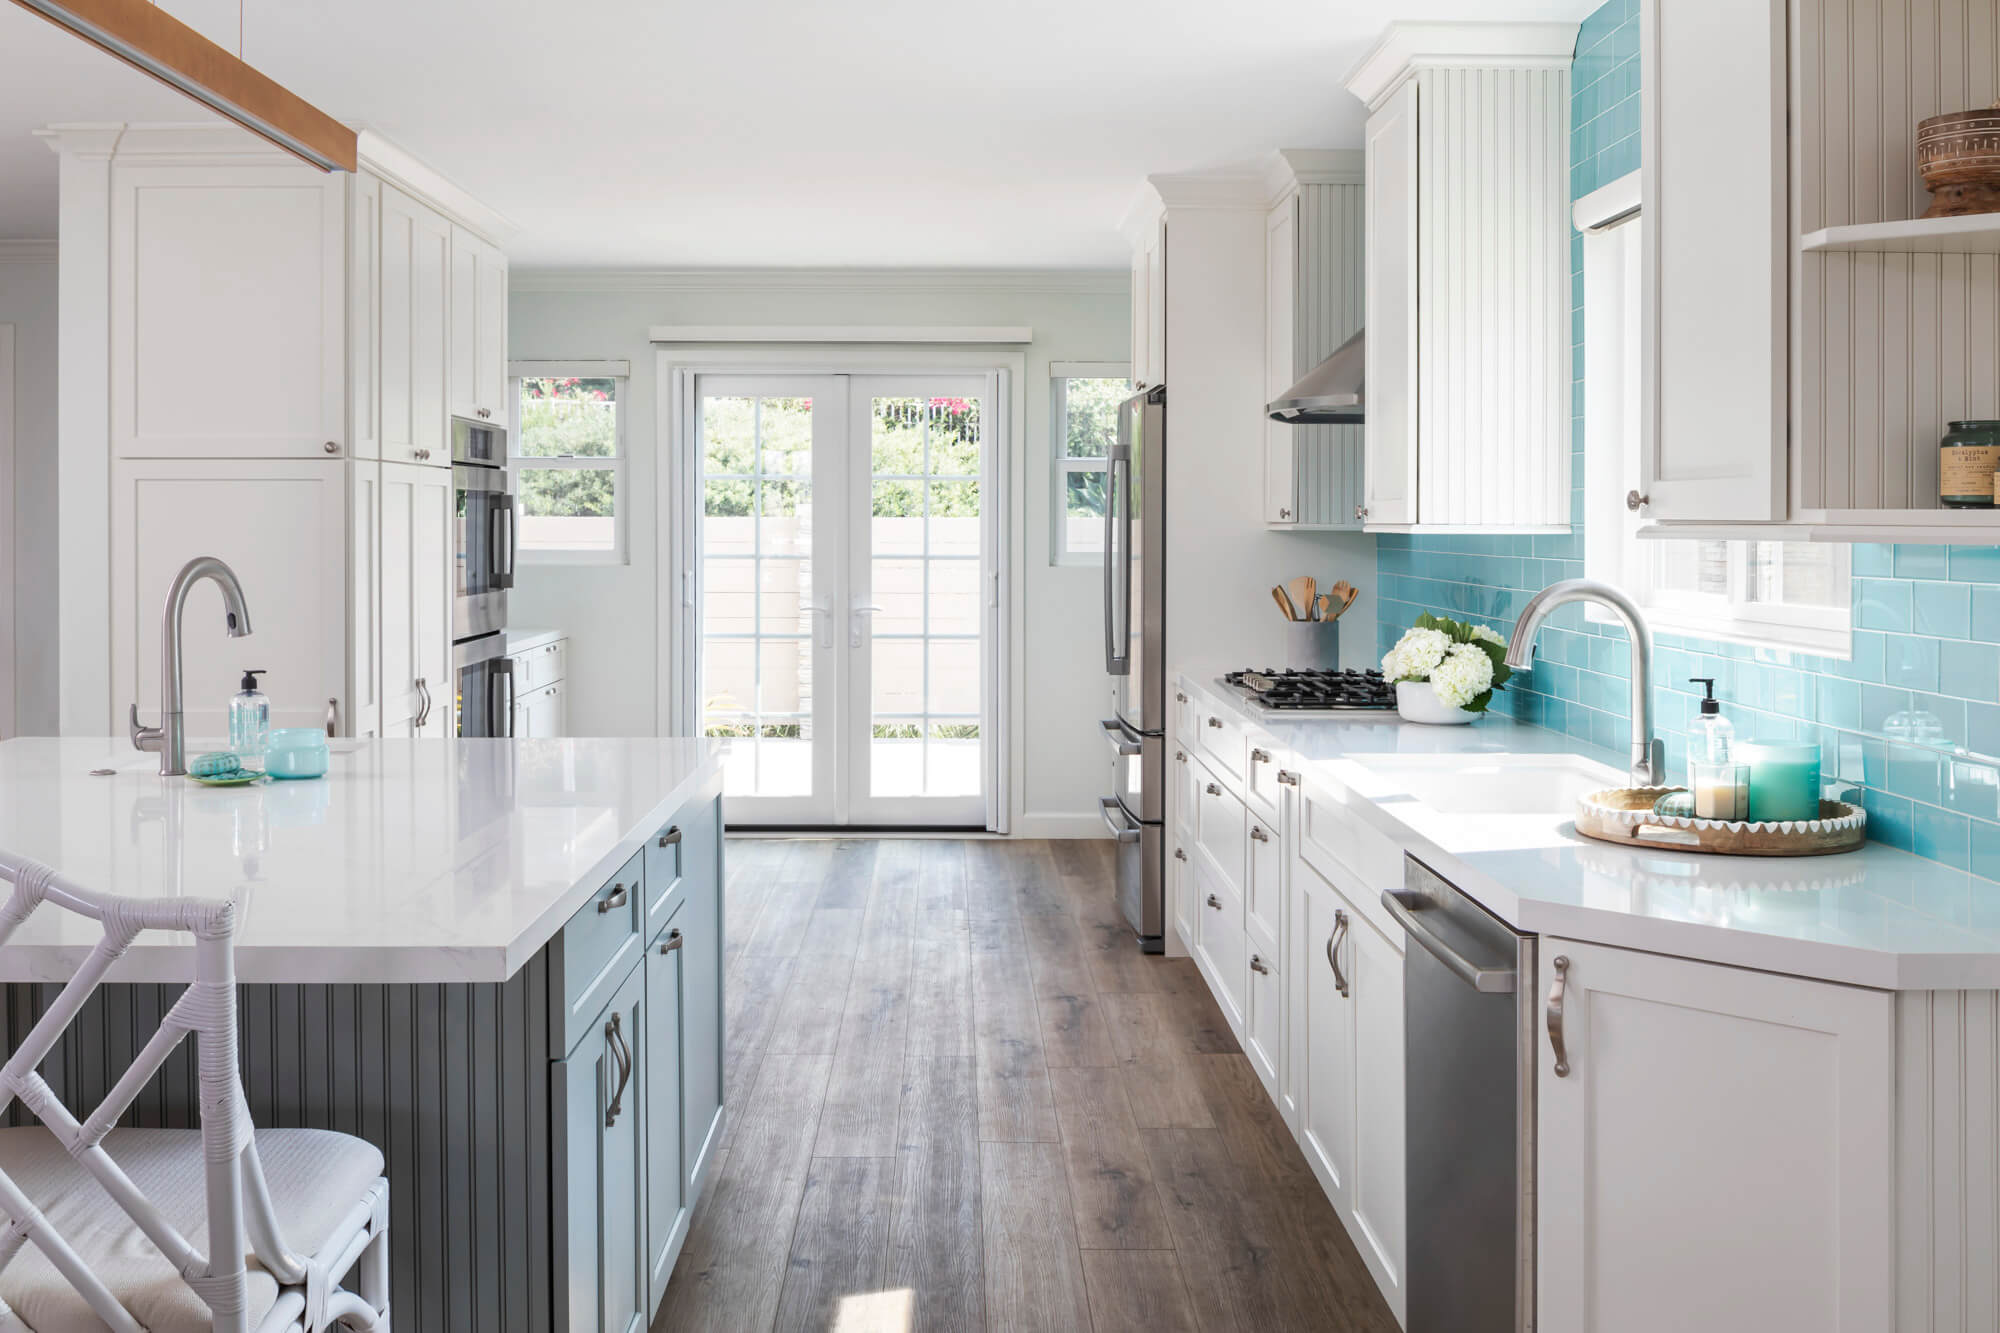 Kitchen leading to French doors